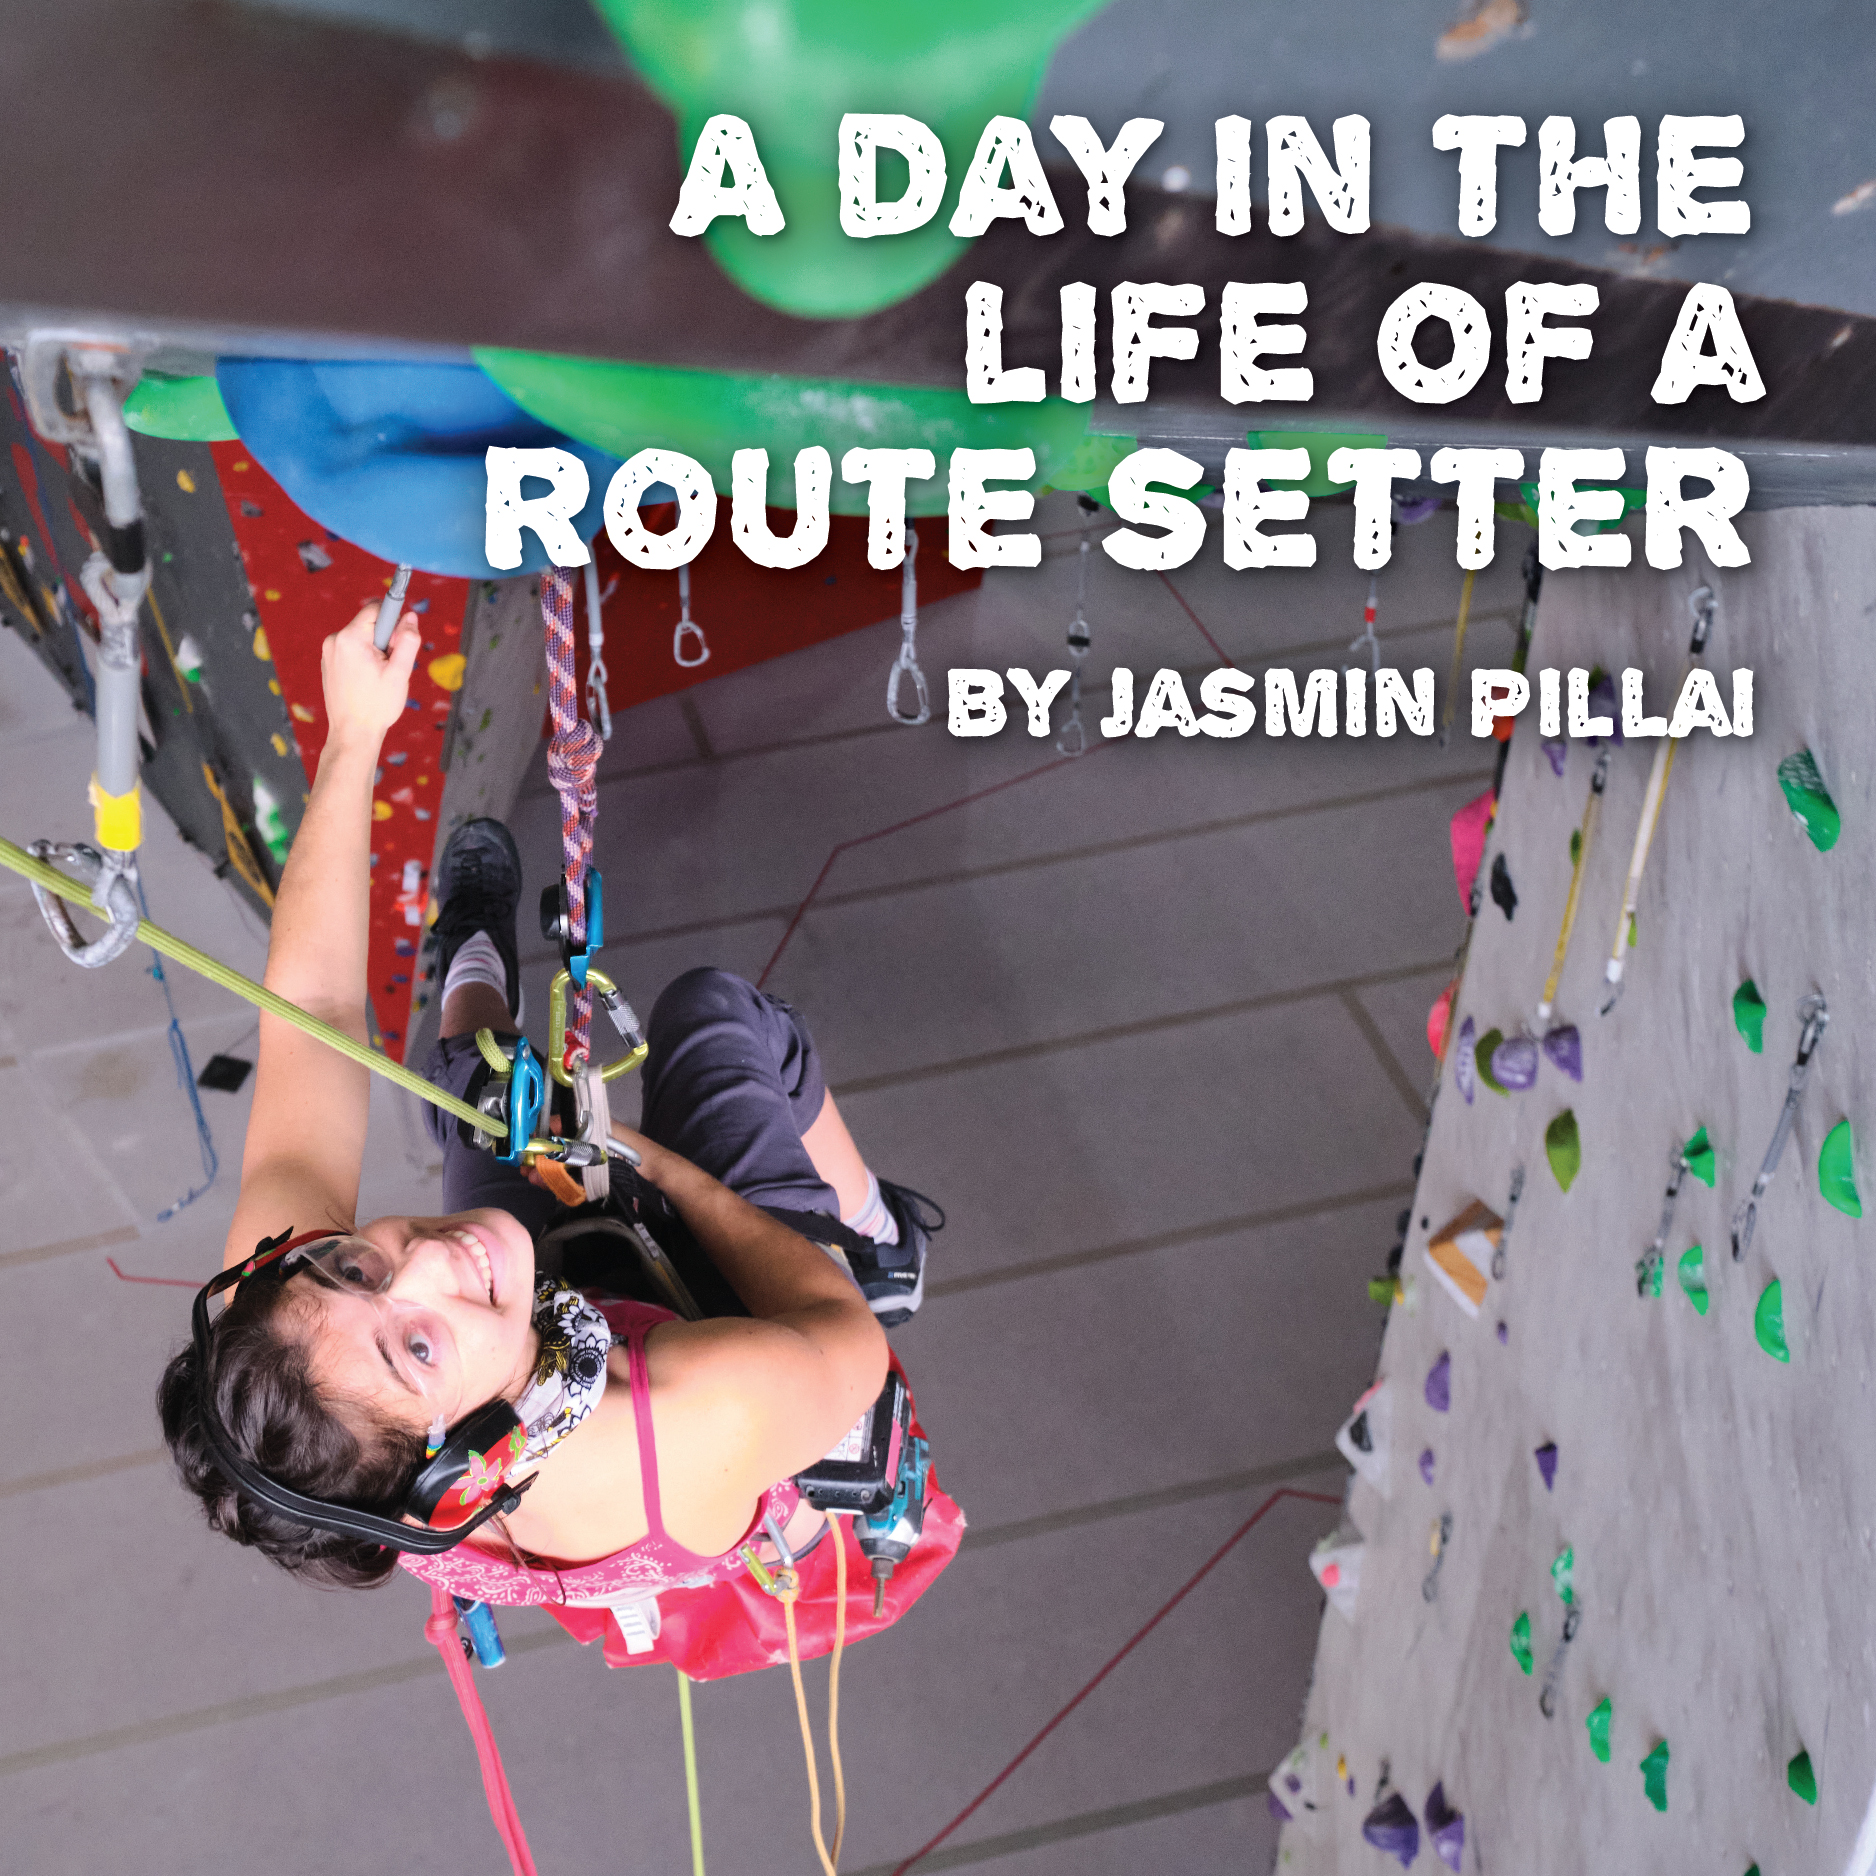 A day in the life of a route setter